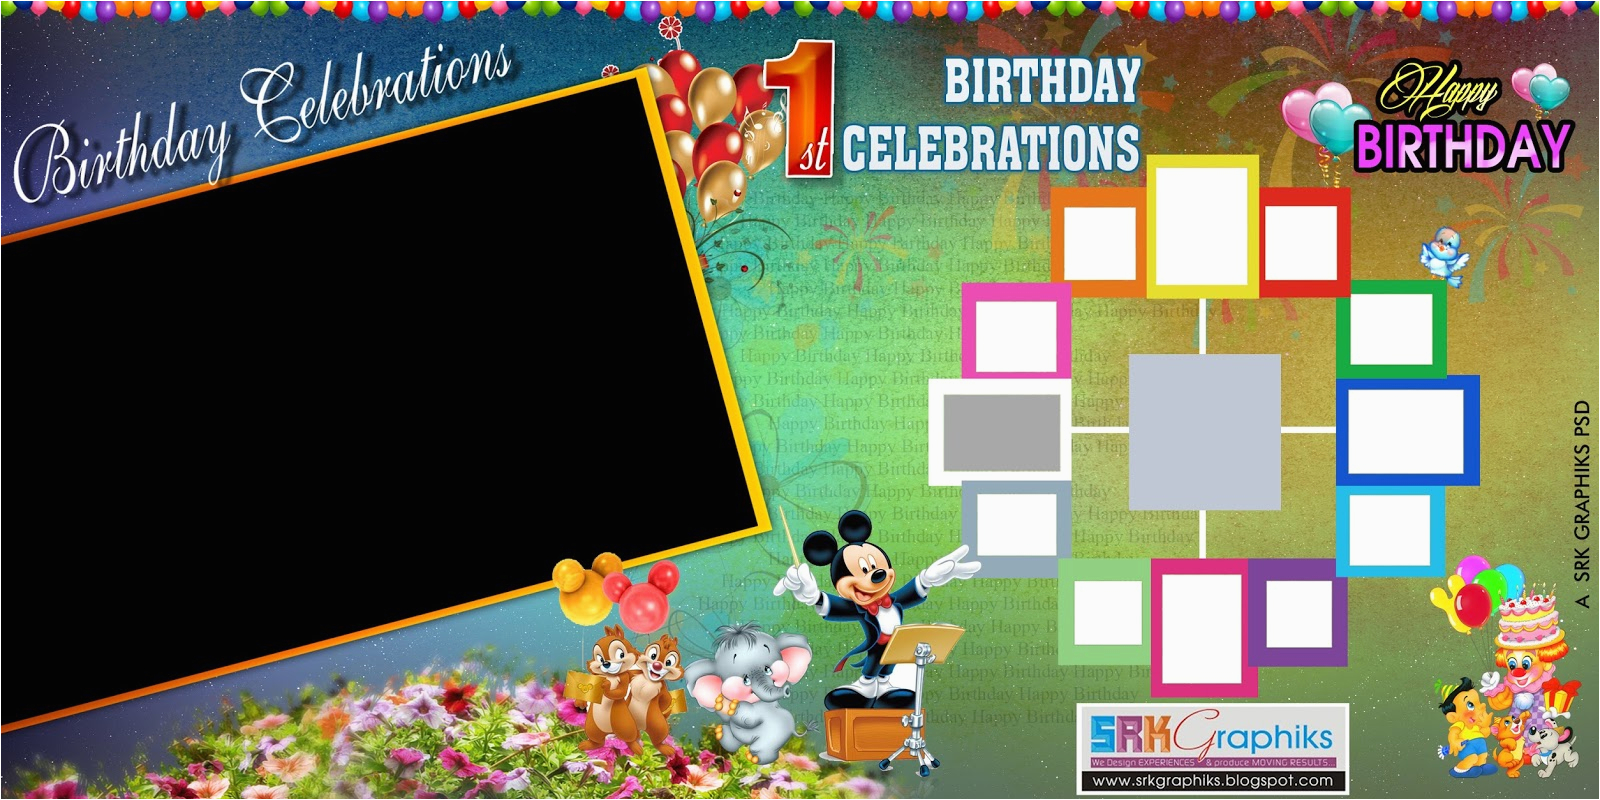 Happy Birthday Banner Wallpaper Download Birthday Banner Background Design Psd 4 Background Check All